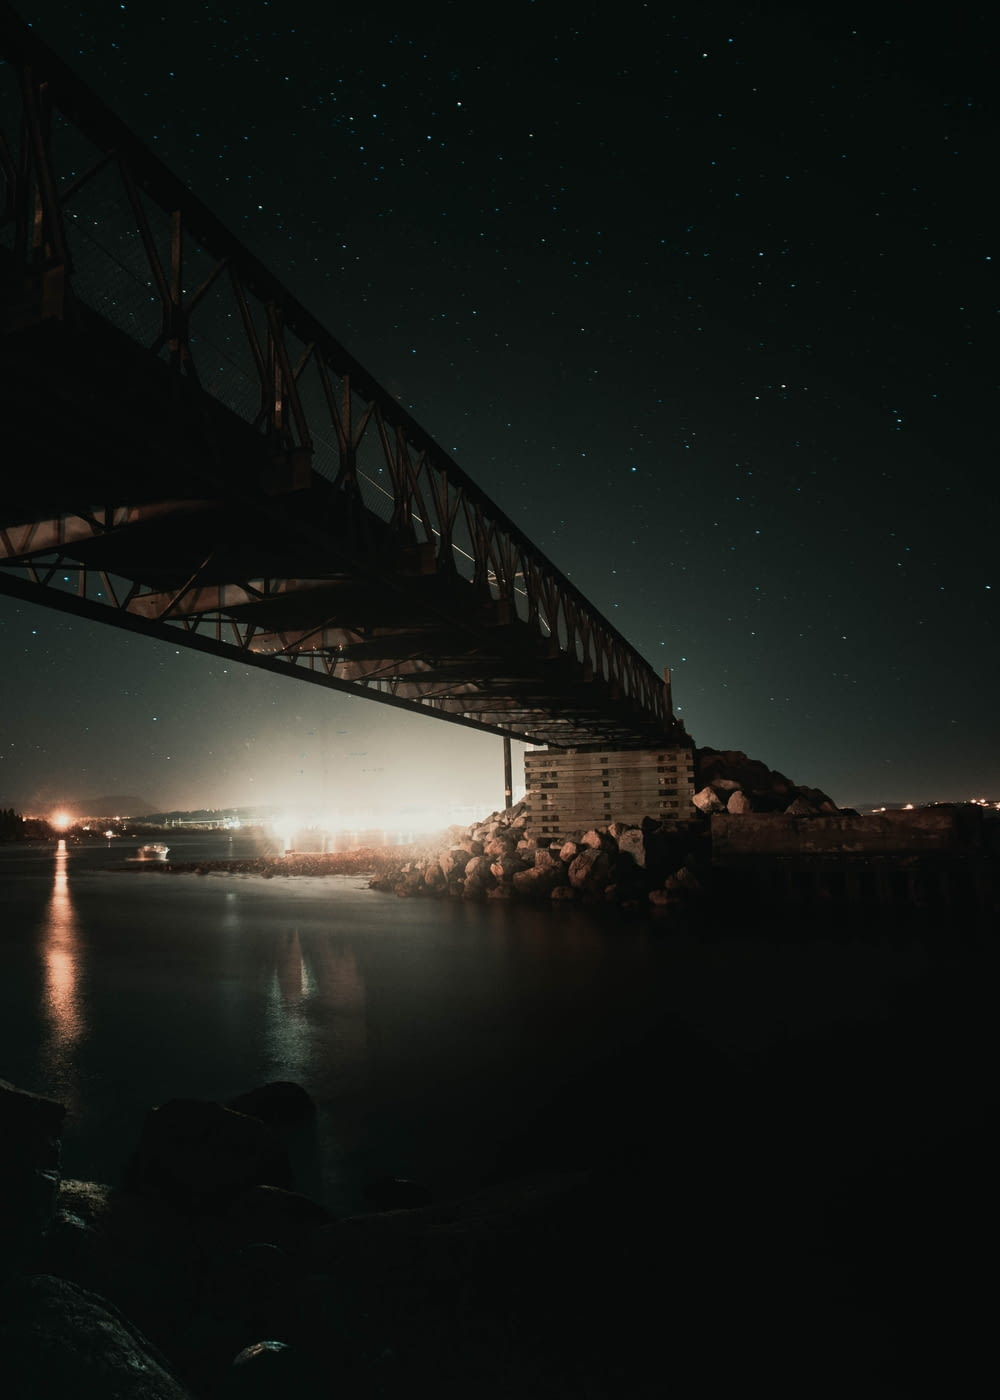 brown bridge over body of water during night time